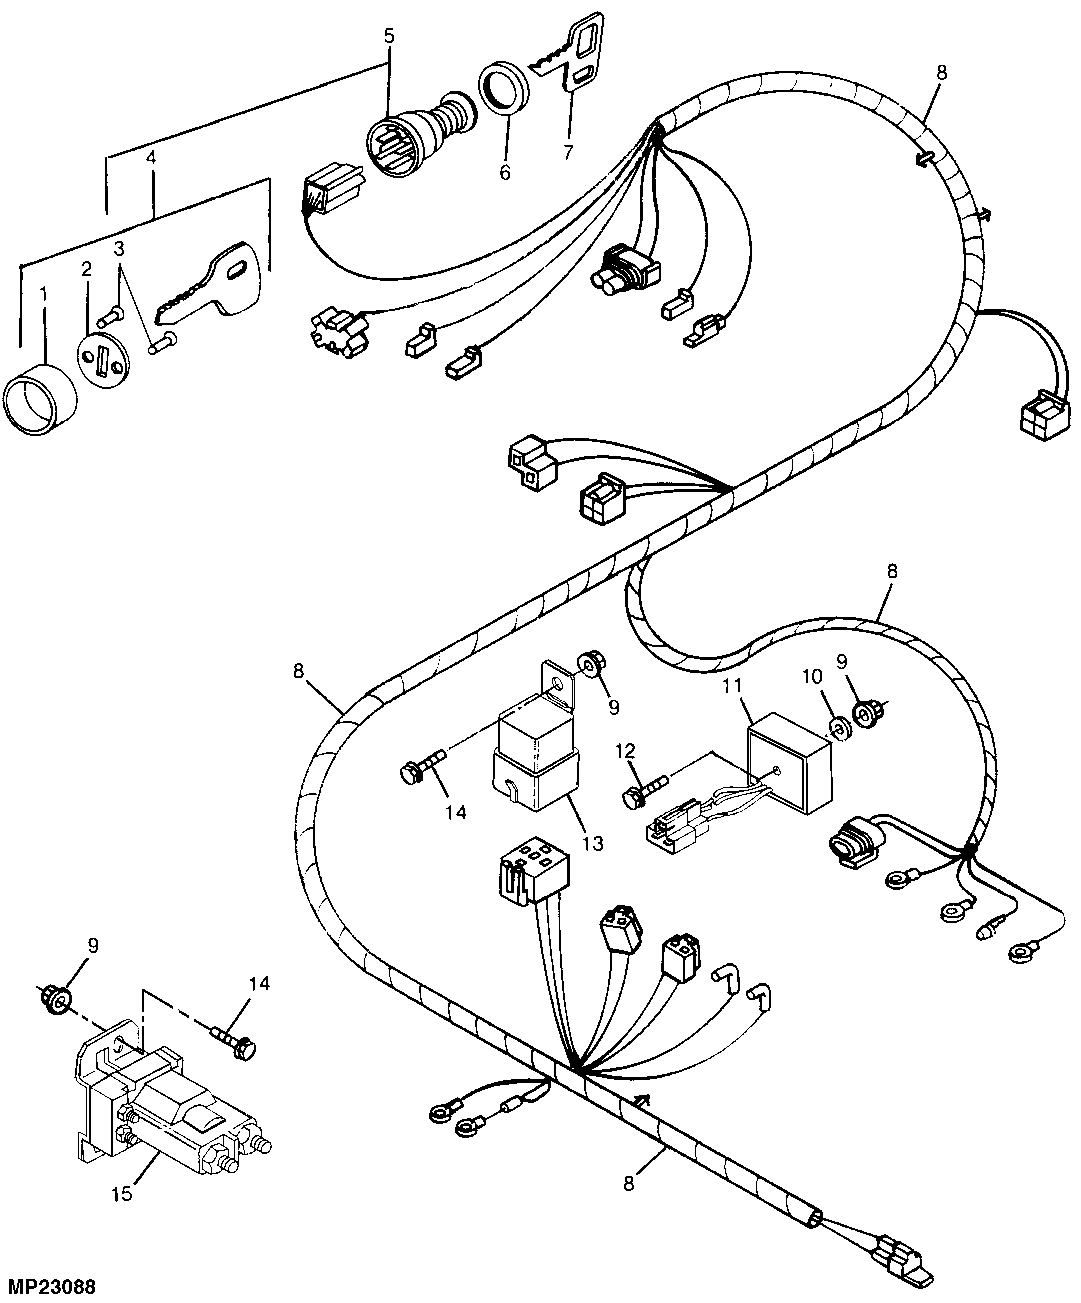 Peg Perego Power Wheels Wiring Diagram - Data Wiring Diagram Site - Starter Solenoid Wiring Diagram